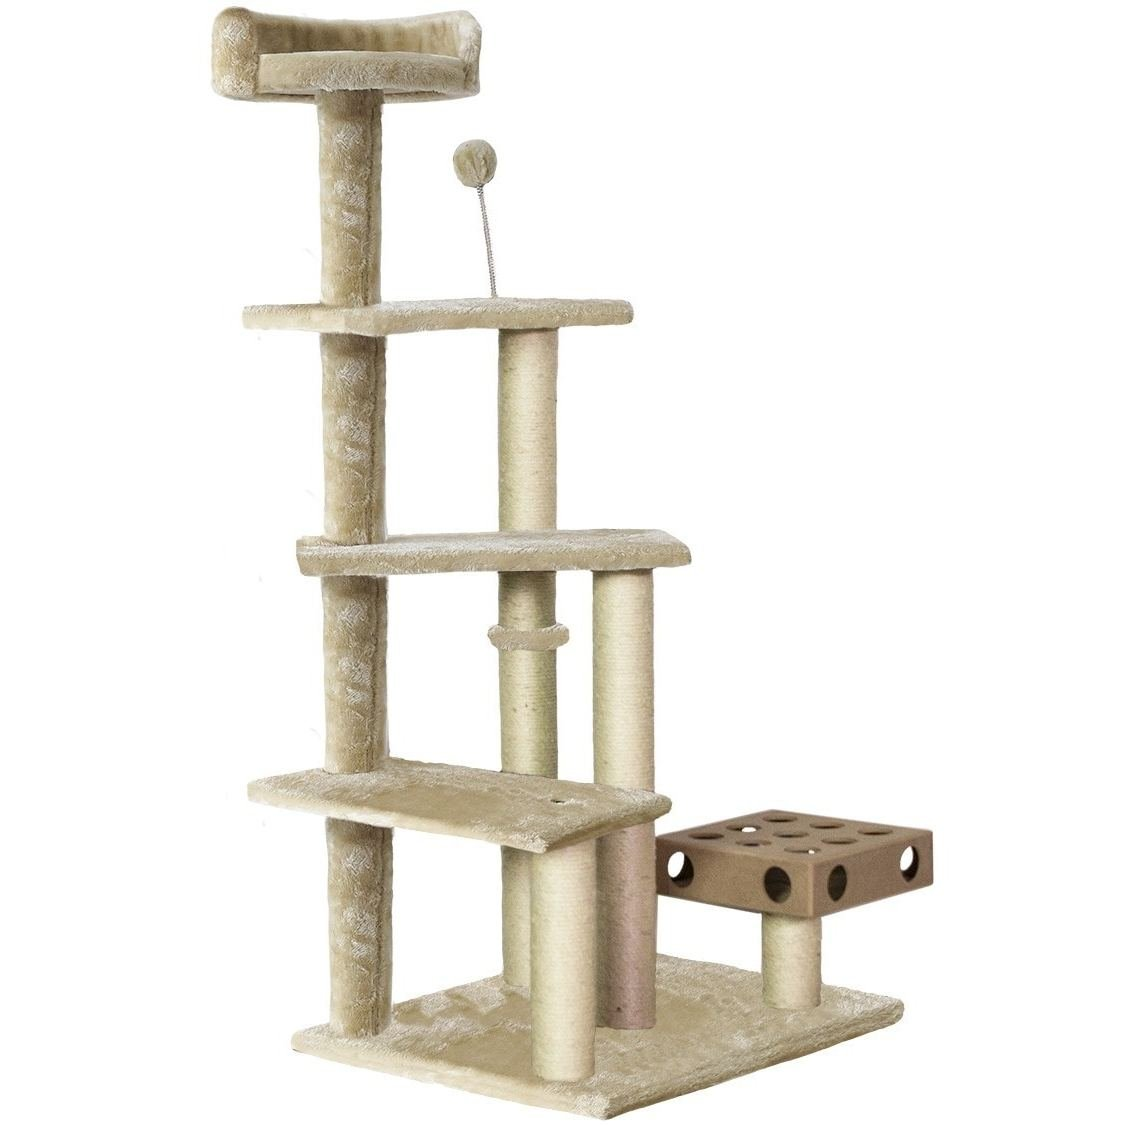 1 Piece Beige 49.5 High Comfort Scratcher Cat Condo, Light Brown Stairs Pet Tree House Kitty Perch Bed, Stable Playground Climbing Platforms Jingle Bell Ball Iq Toy Elevated Removable Cover Sisal Rope